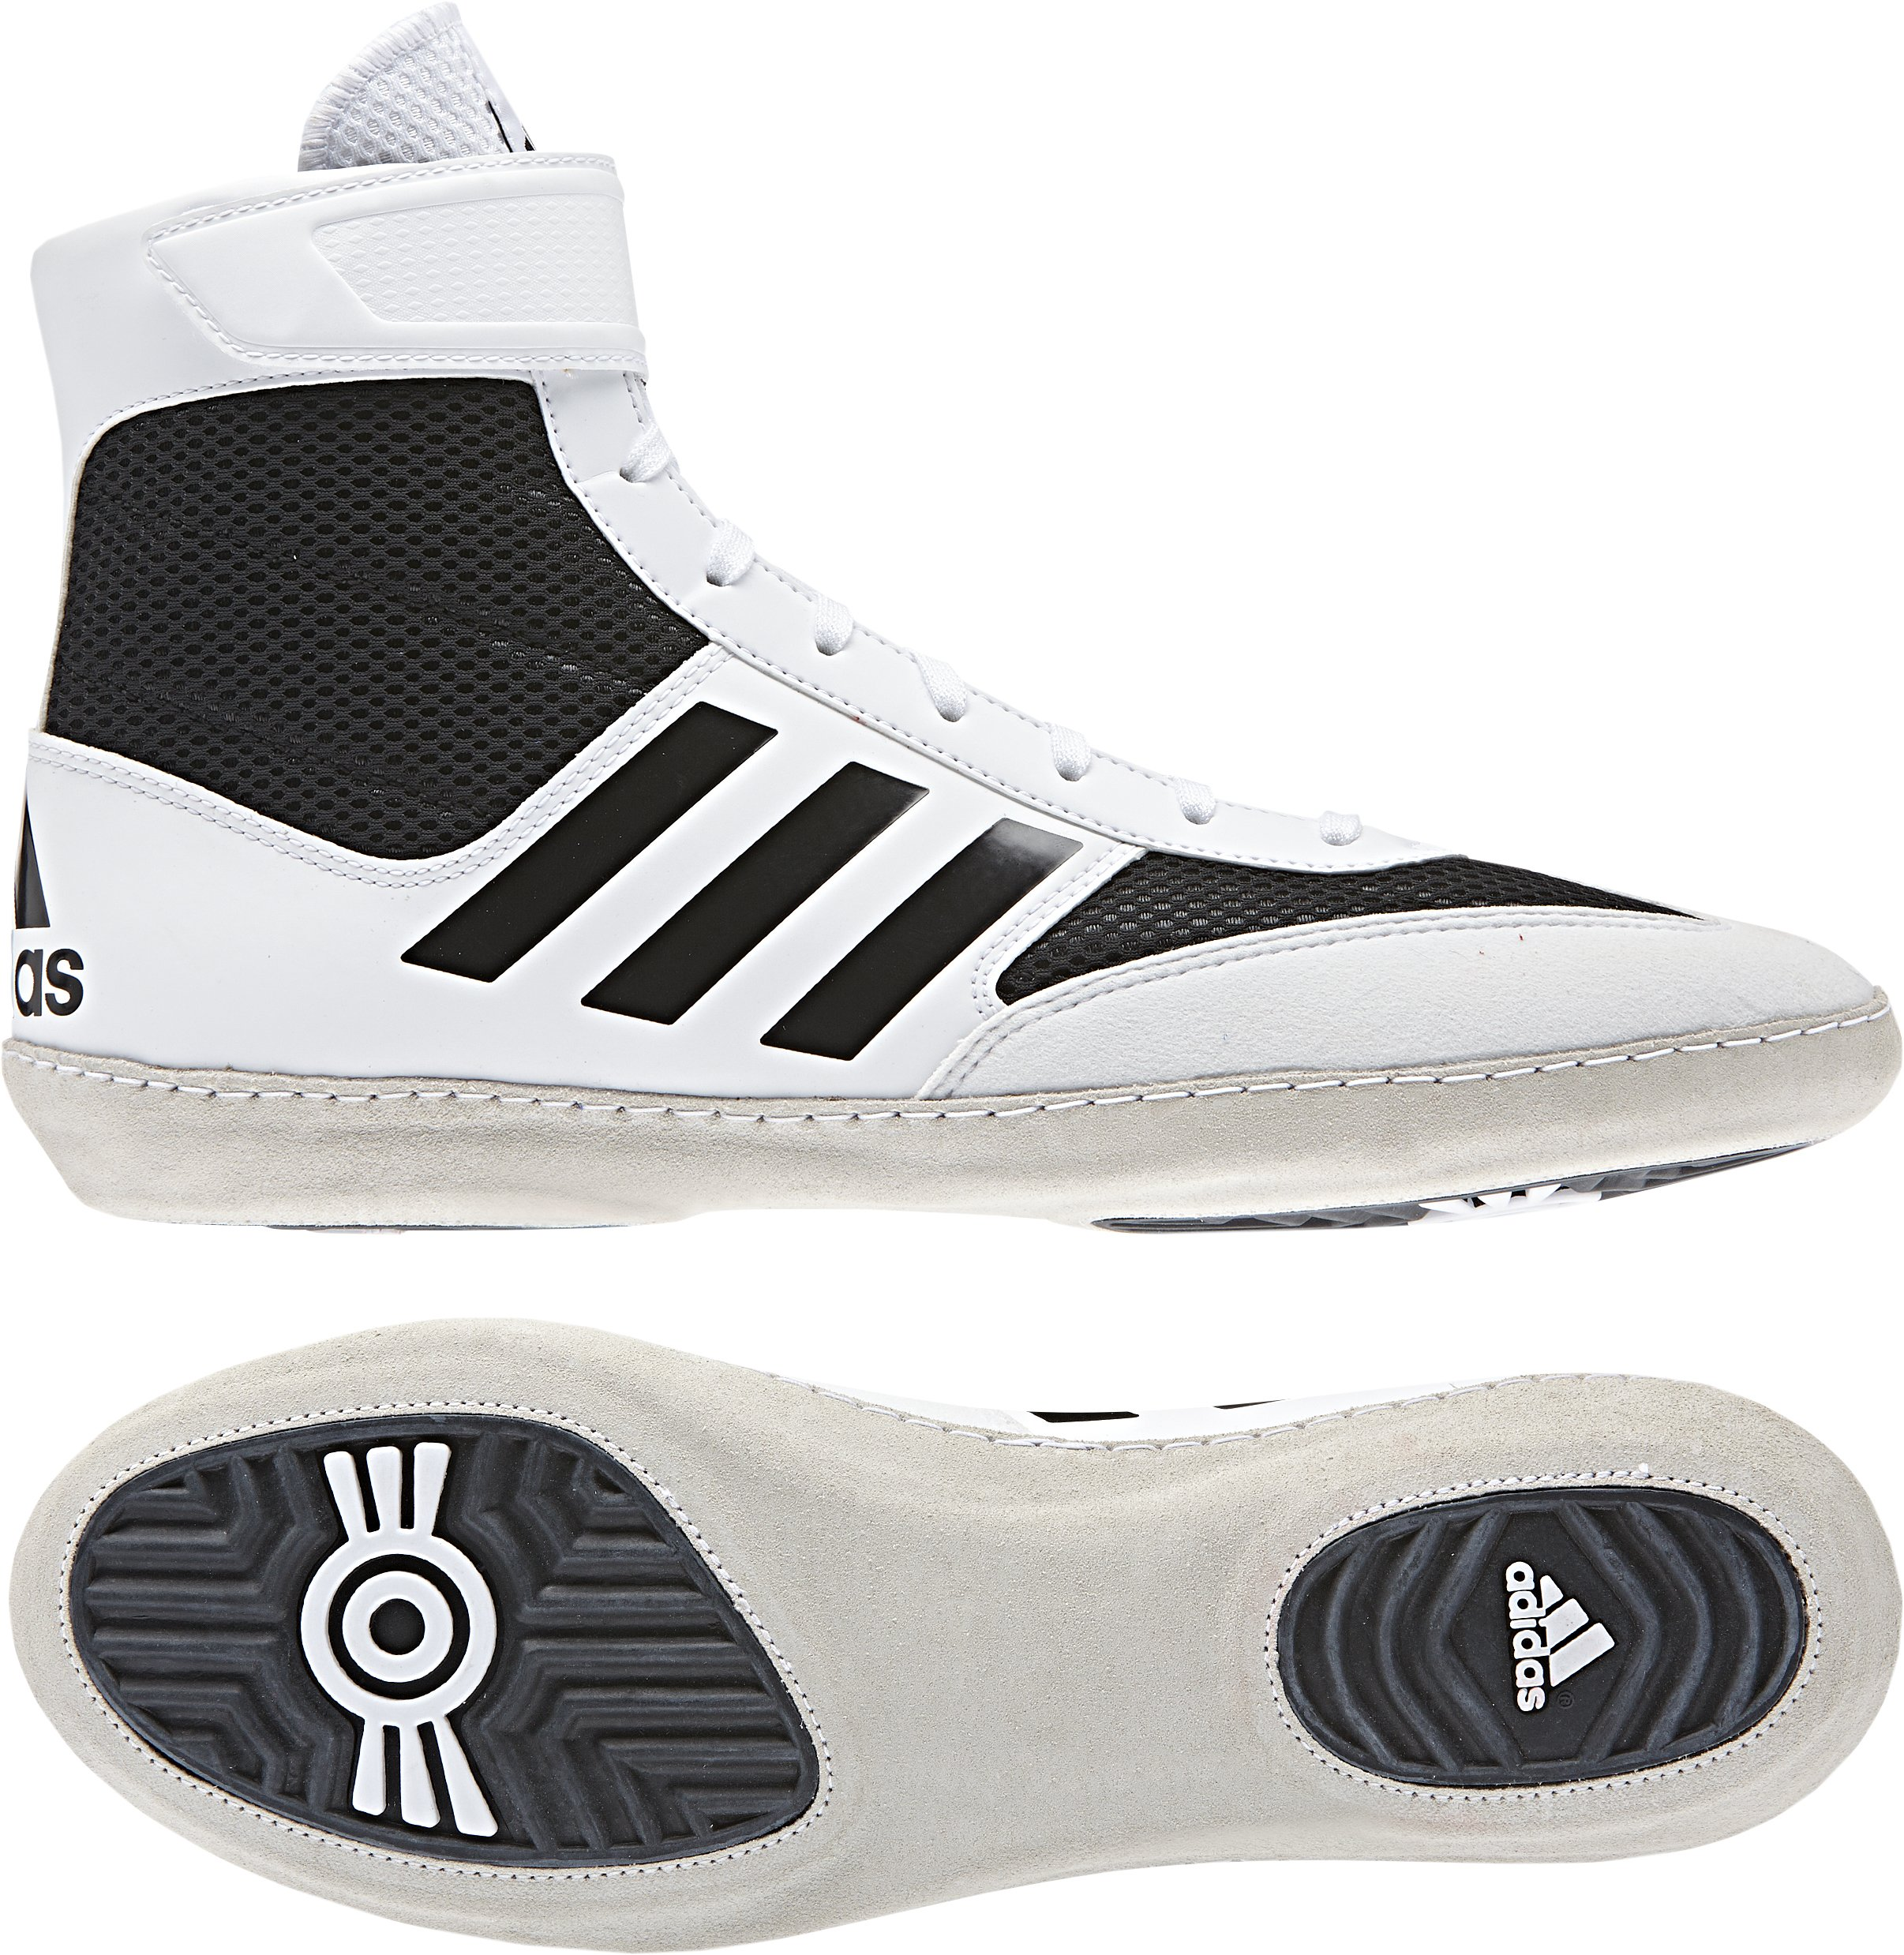 adidas Combat Speed 5 Men's Wrestling Shoes, White/Black, Size 6 by Adidas